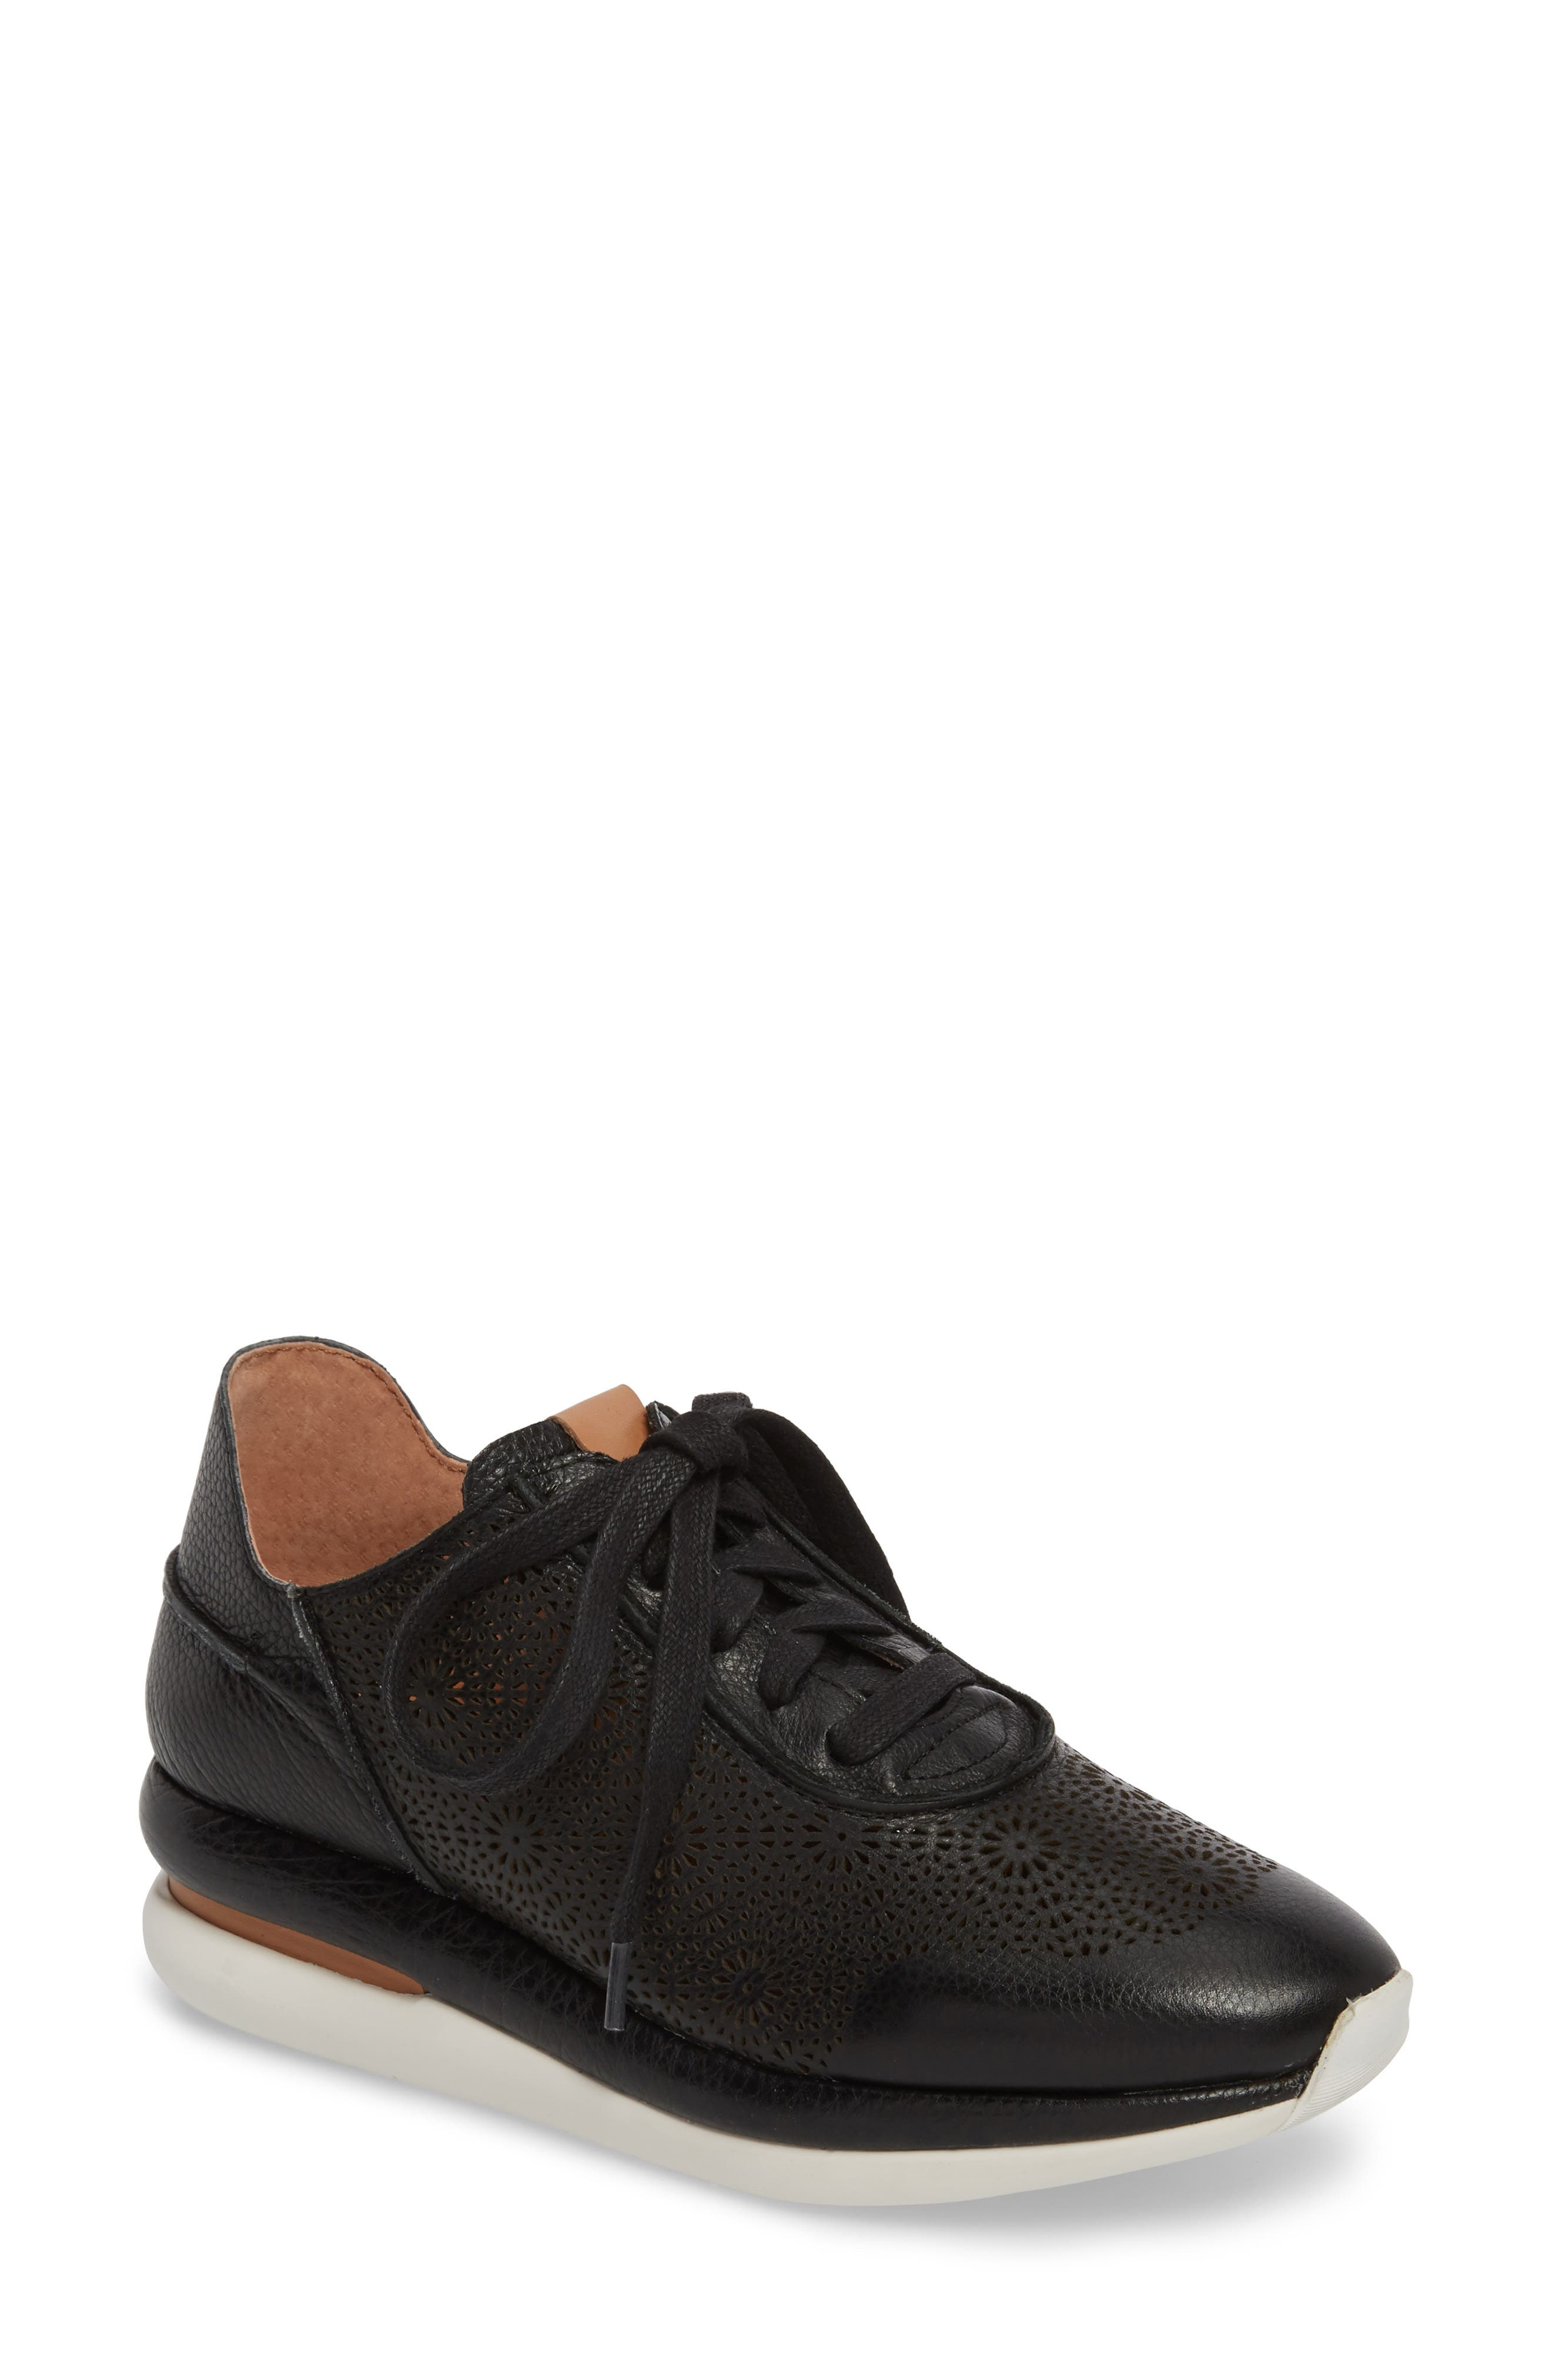 GENTLE SOULS BY KENNETH COLE, Raina II Sneaker, Main thumbnail 1, color, BLACK LEATHER